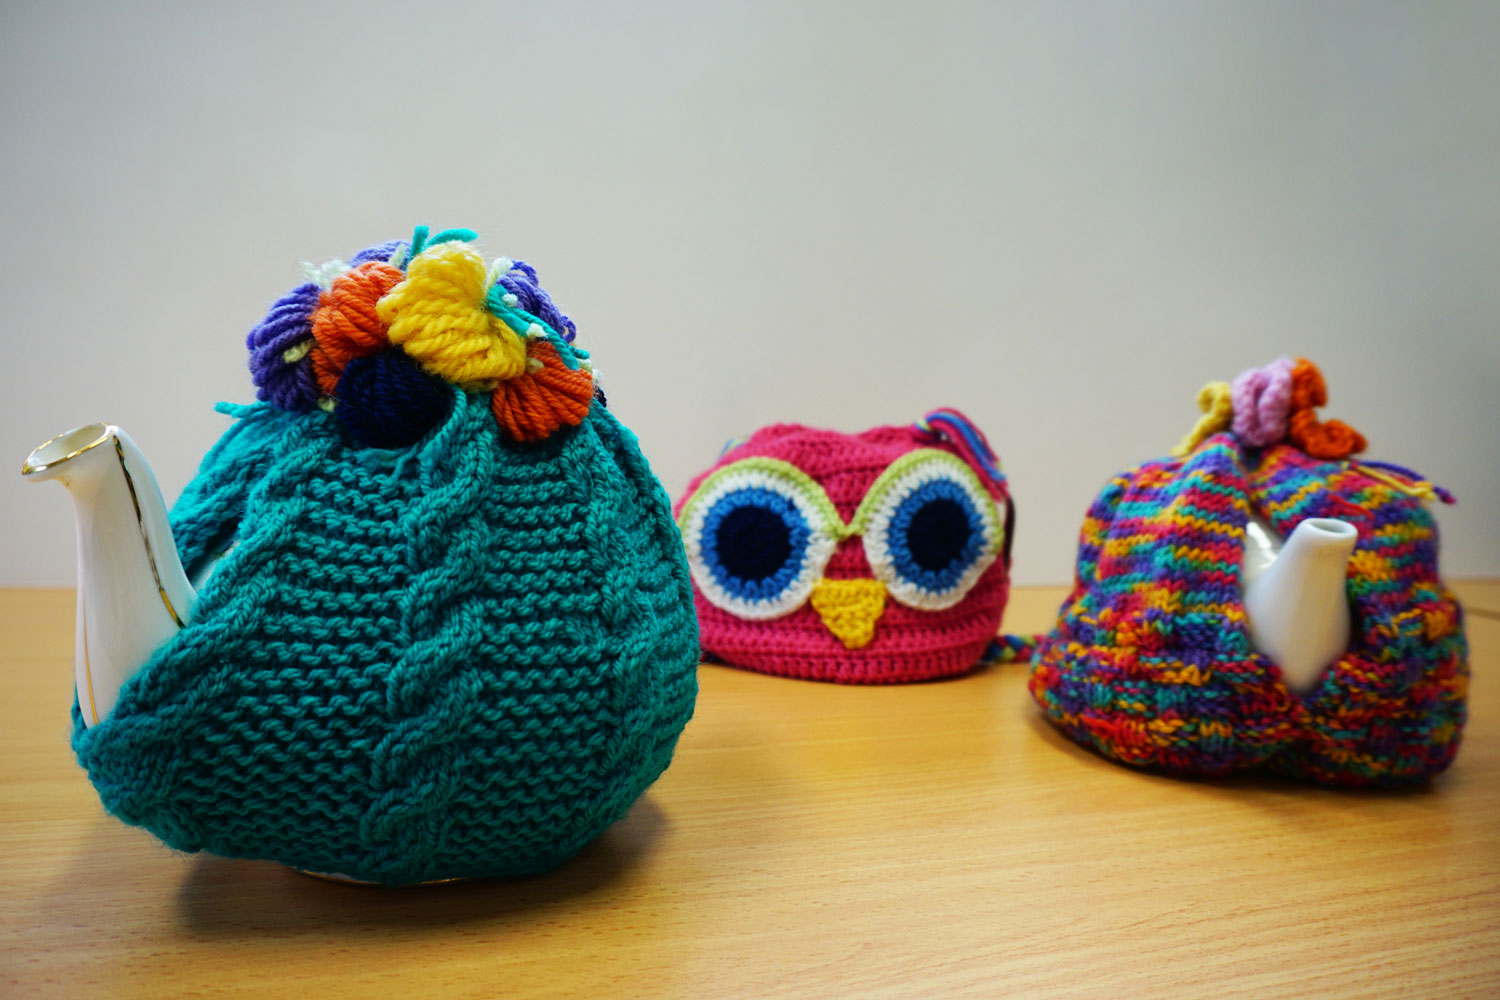 Assorted knitted tea-cosies to keep your tea warm